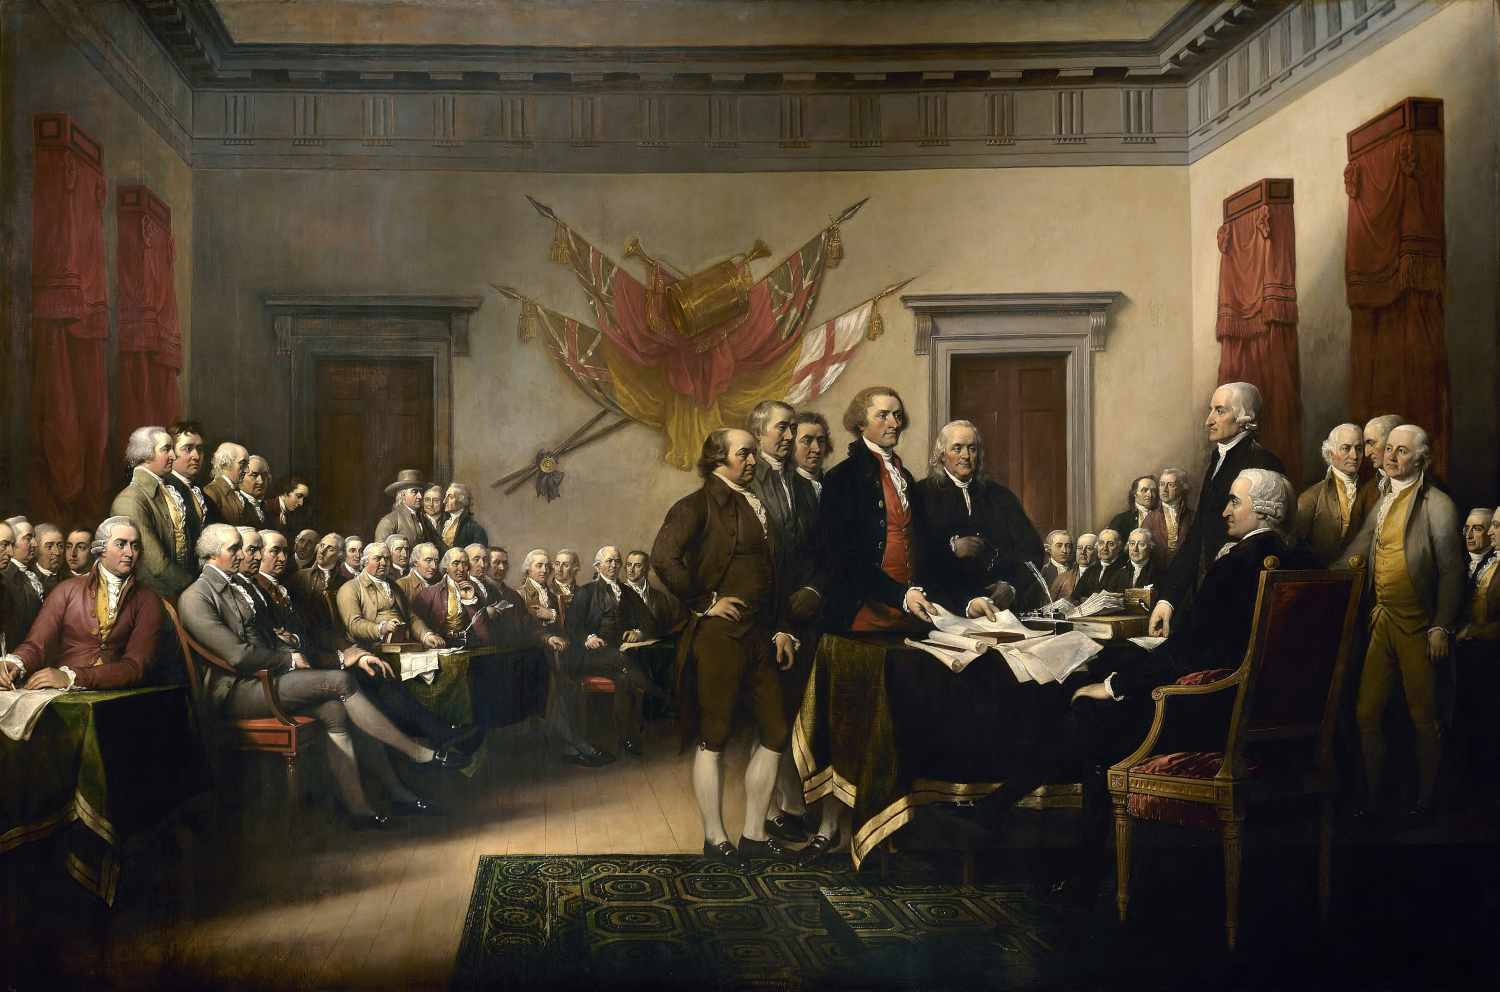 Declaration of Independence (1819), by John Trumbull